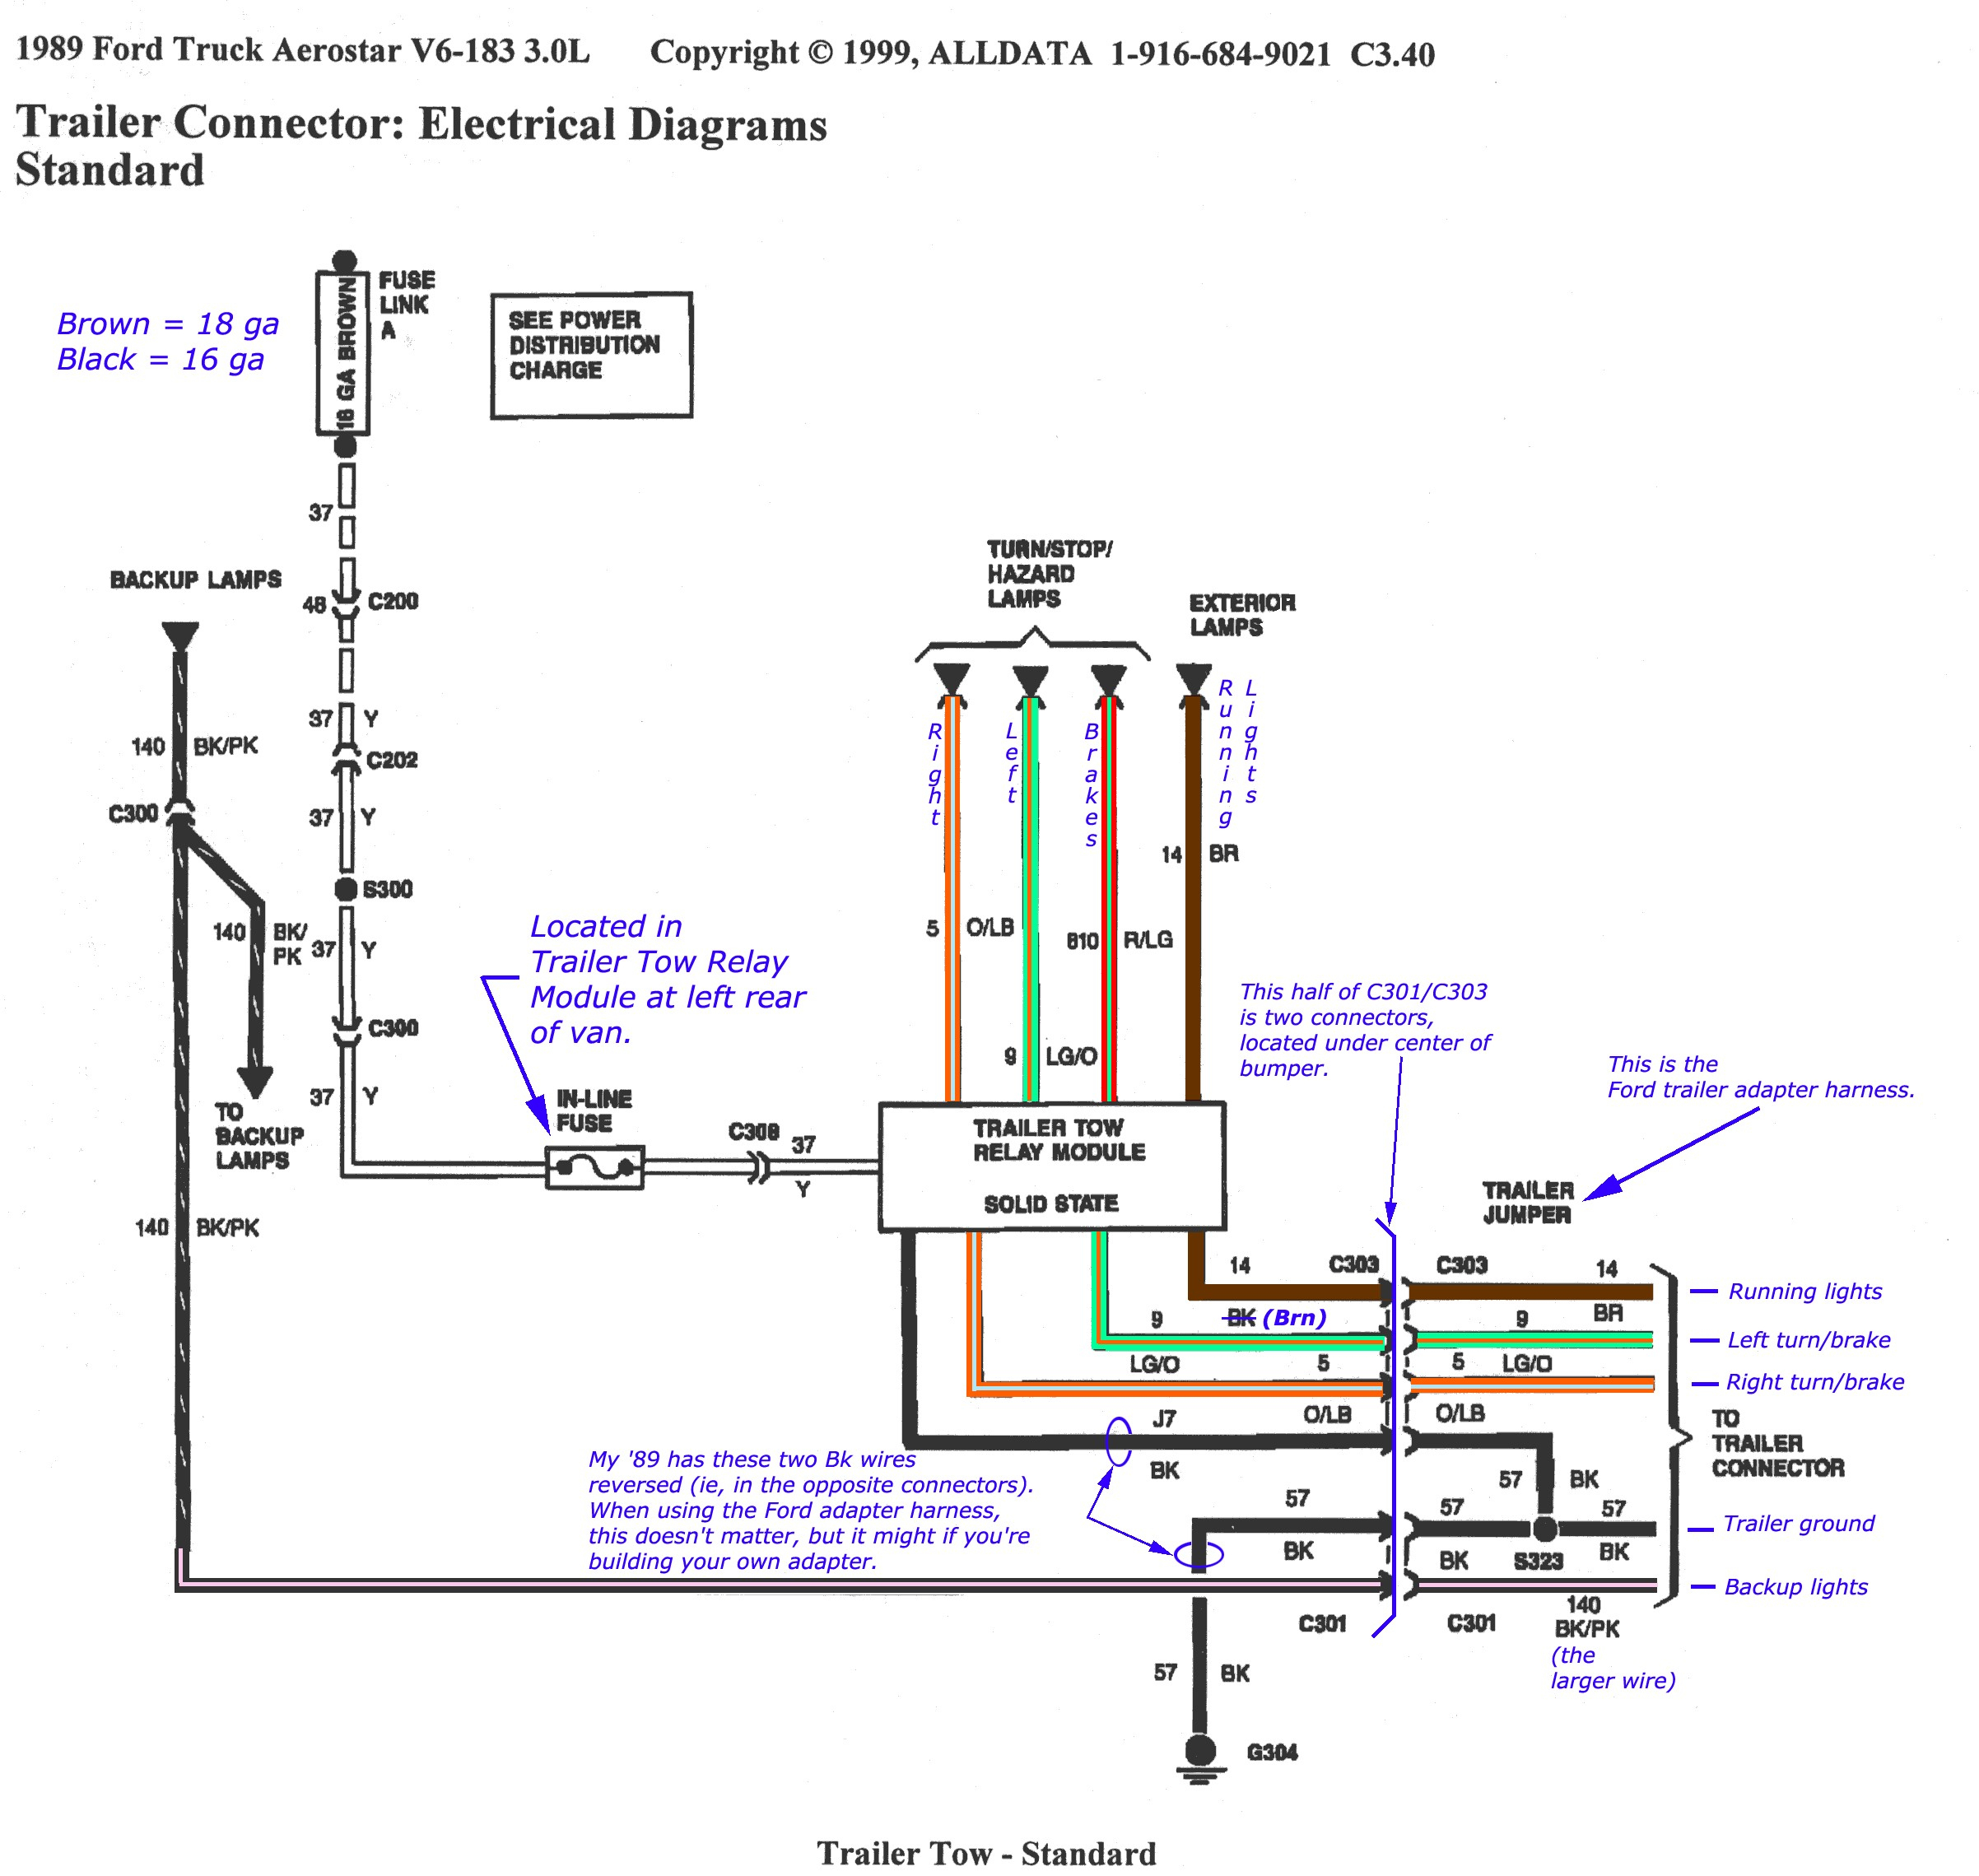 Trailer Ke Controller Wiring Diagram - Wiring Data Diagram - Trailer Battery Wiring Diagram